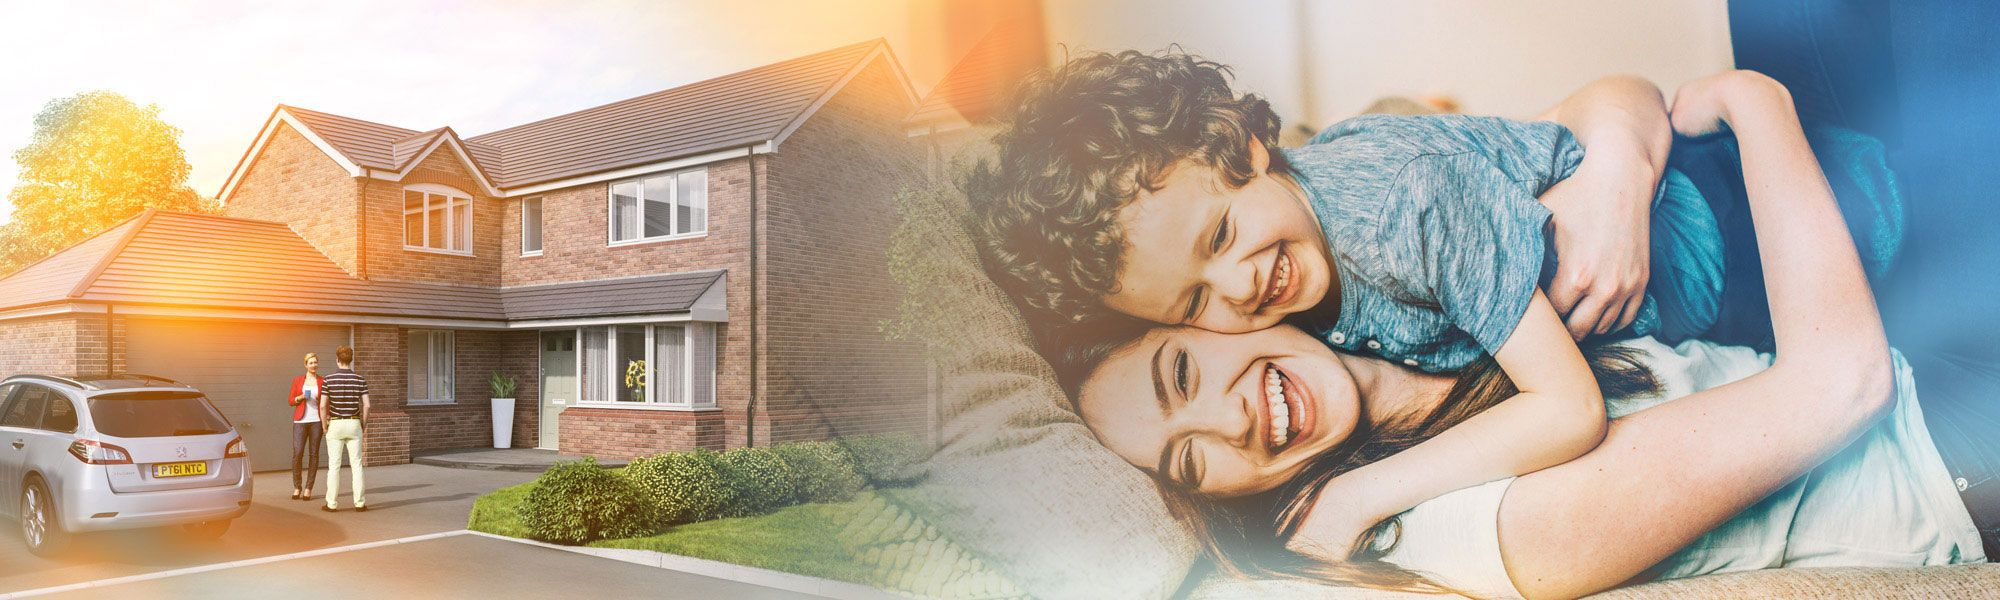 Gower Homes house buyers in Wrexham